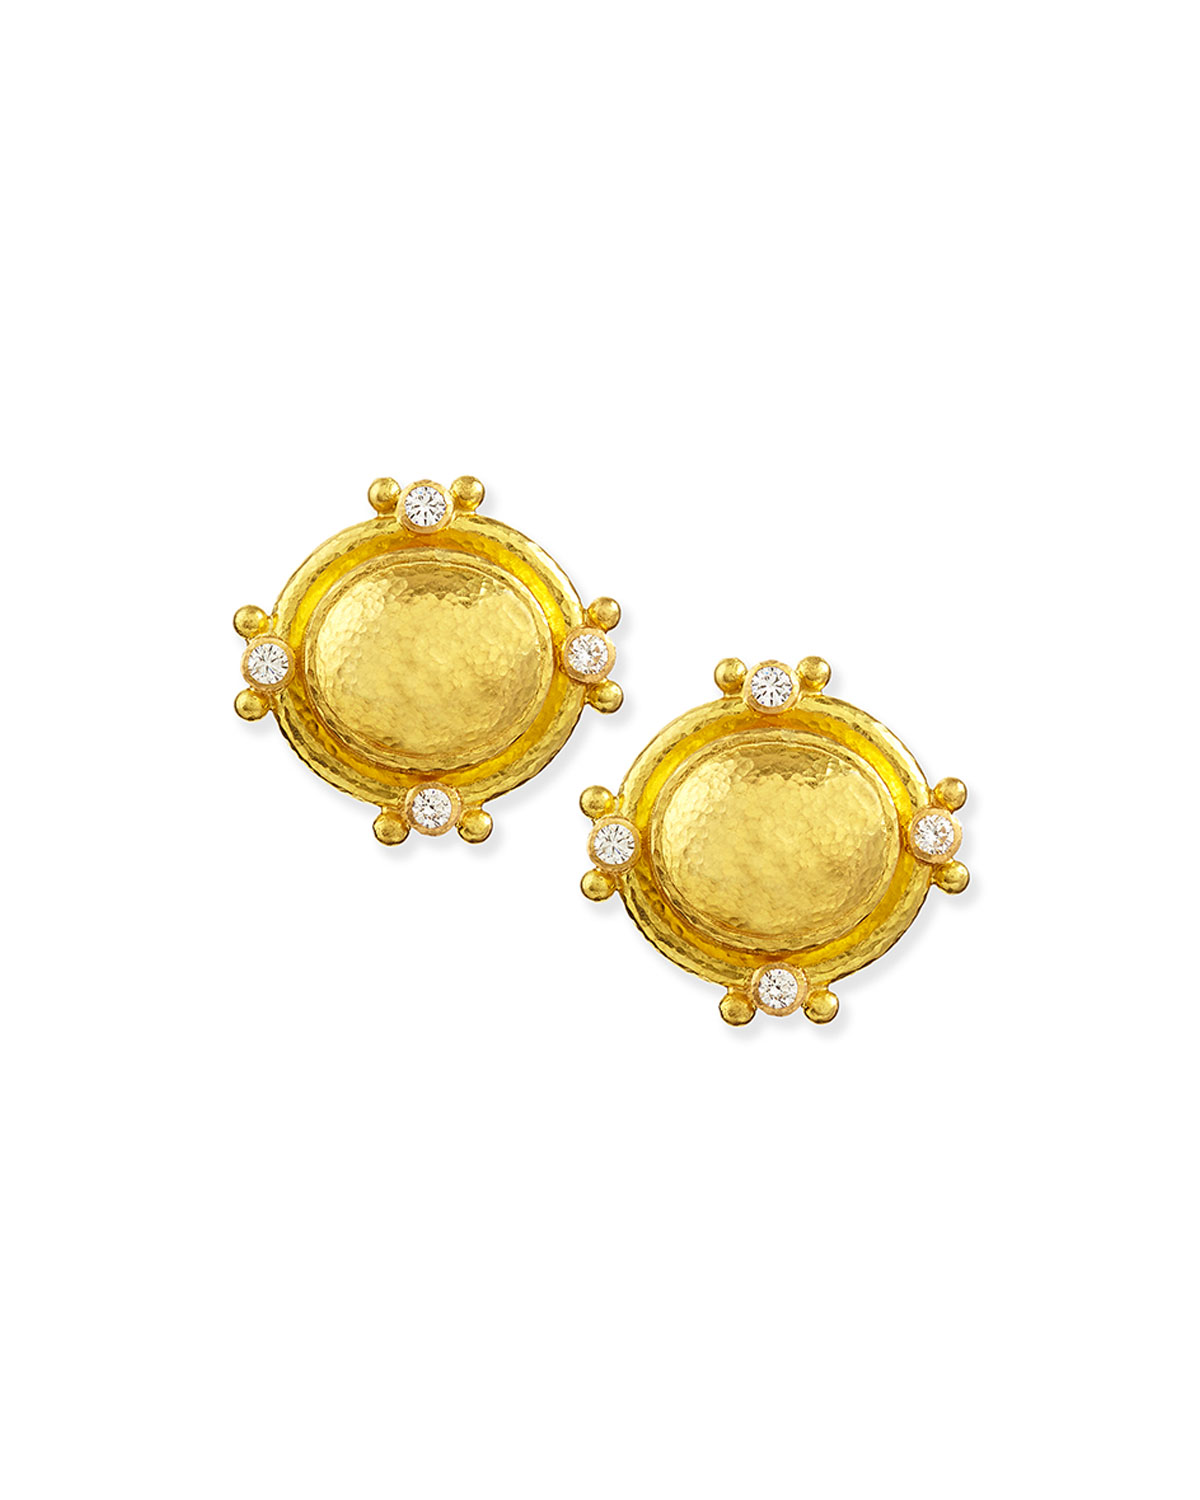 Elizabeth Locke 19k Gold Dome Earrings with Diamonds bSXFh